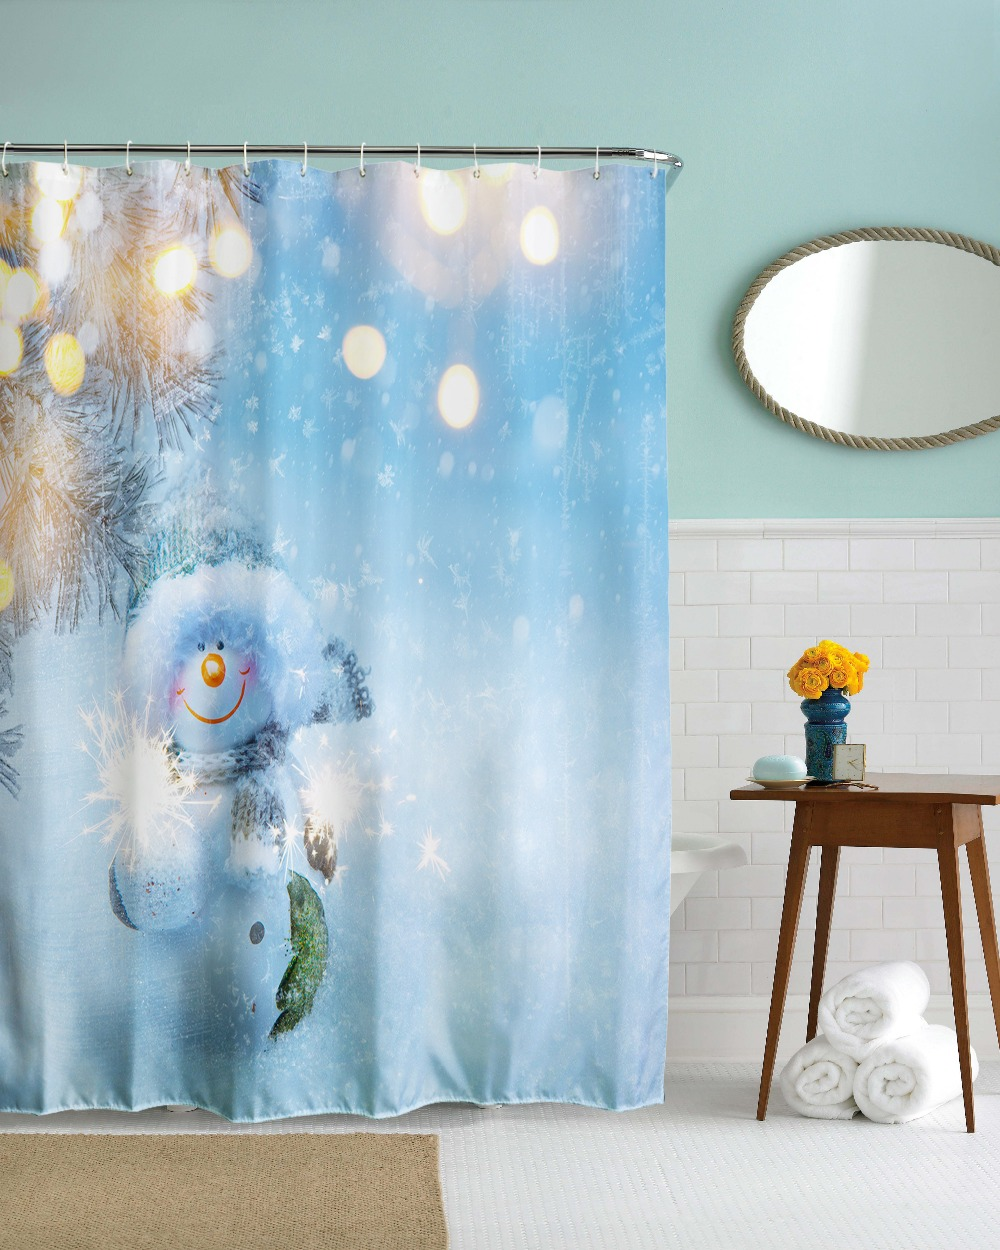 2017 New Year Christmas Waterproof Bathroom Shower Curtain Polyester ...